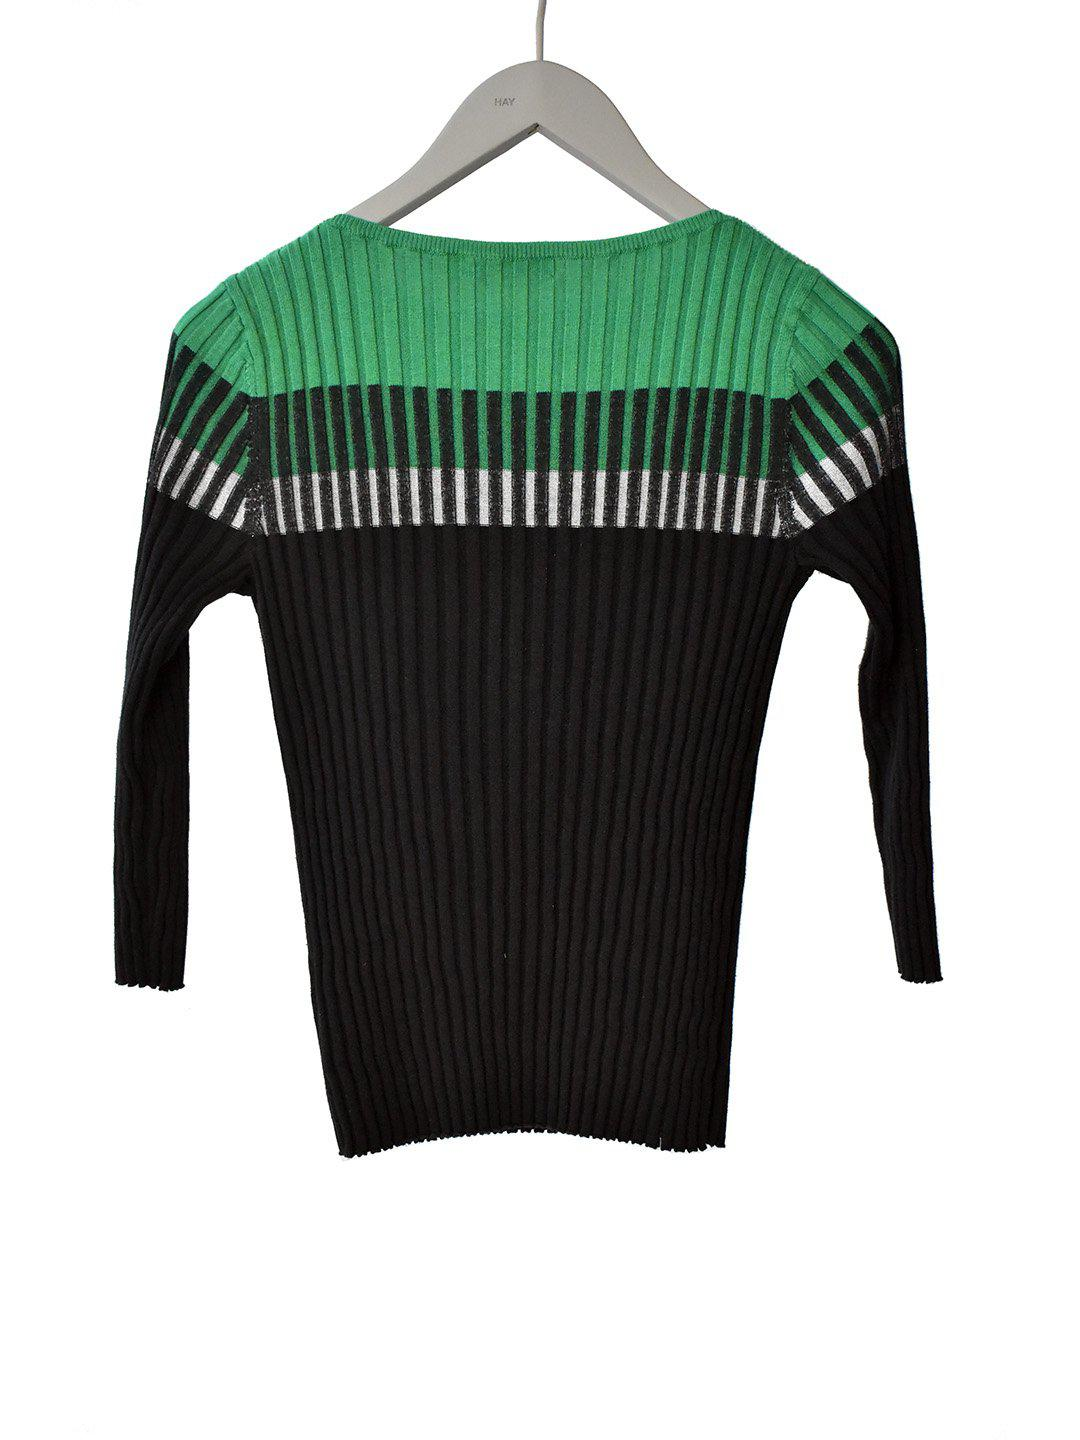 Sort/Grøn Strik Sweater fra Ralph Lauren